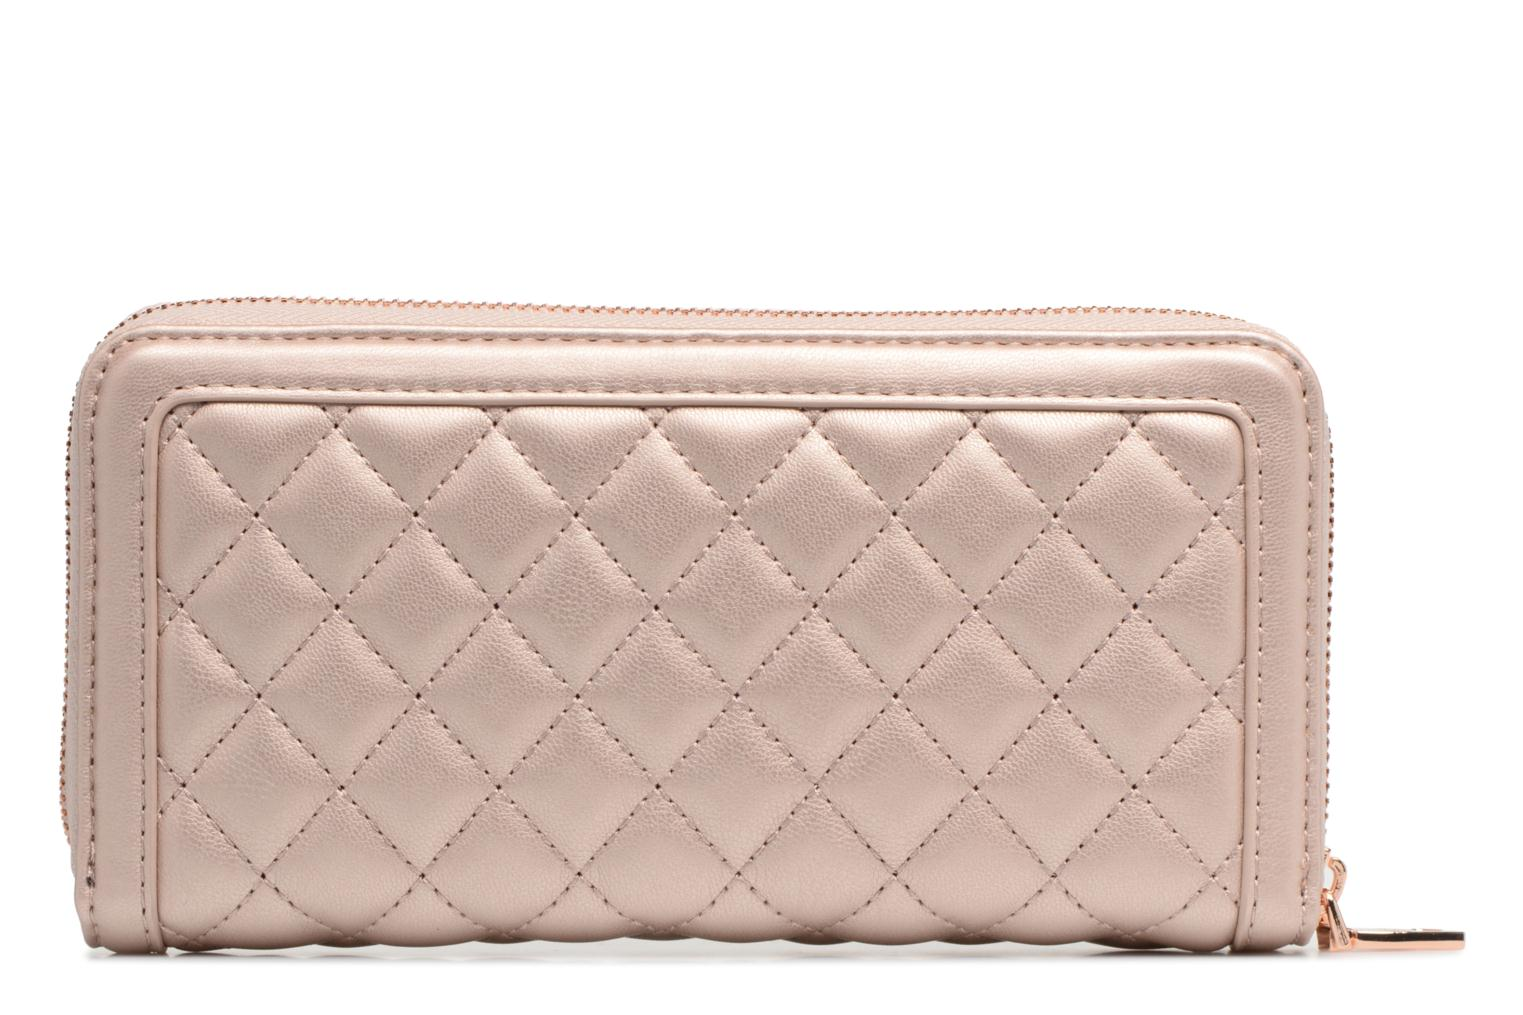 Pelletteria Love Moschino Portefeuille Super Quilted Argento immagine frontale